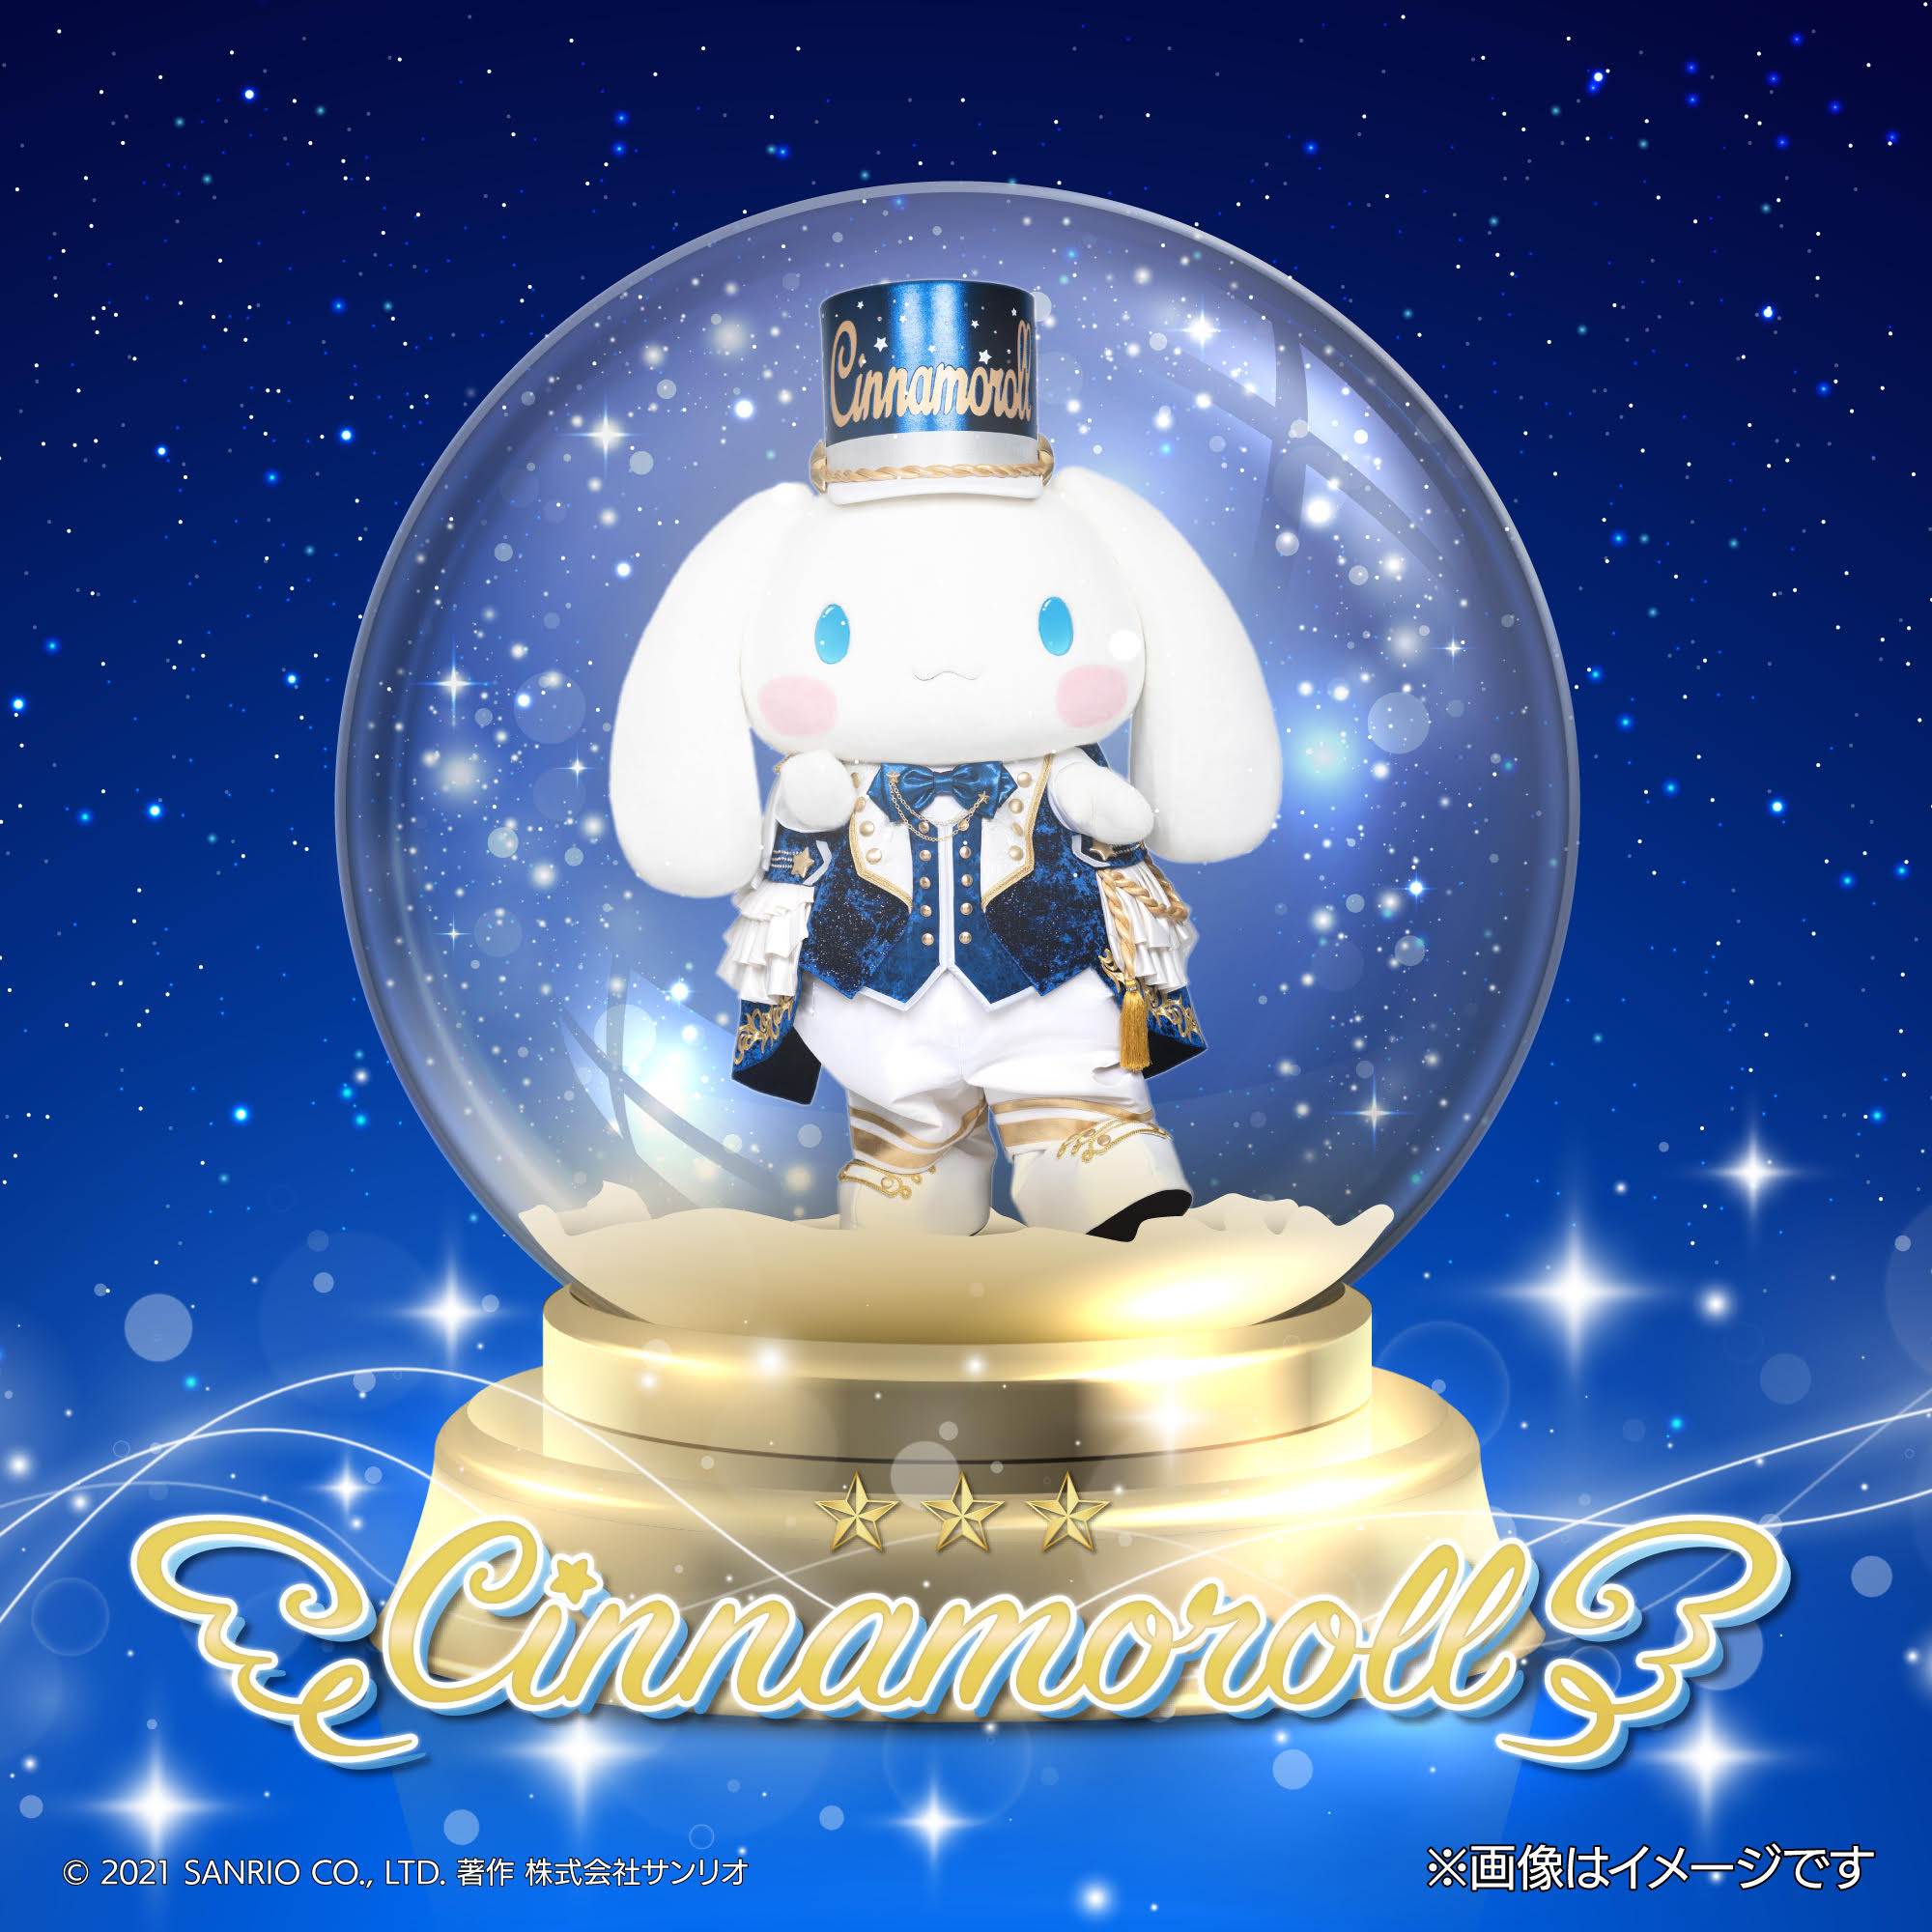 """Cinnamoroll """"Star dome"""" Limited Edition (CD+DVD) Release in November 4th 2021"""